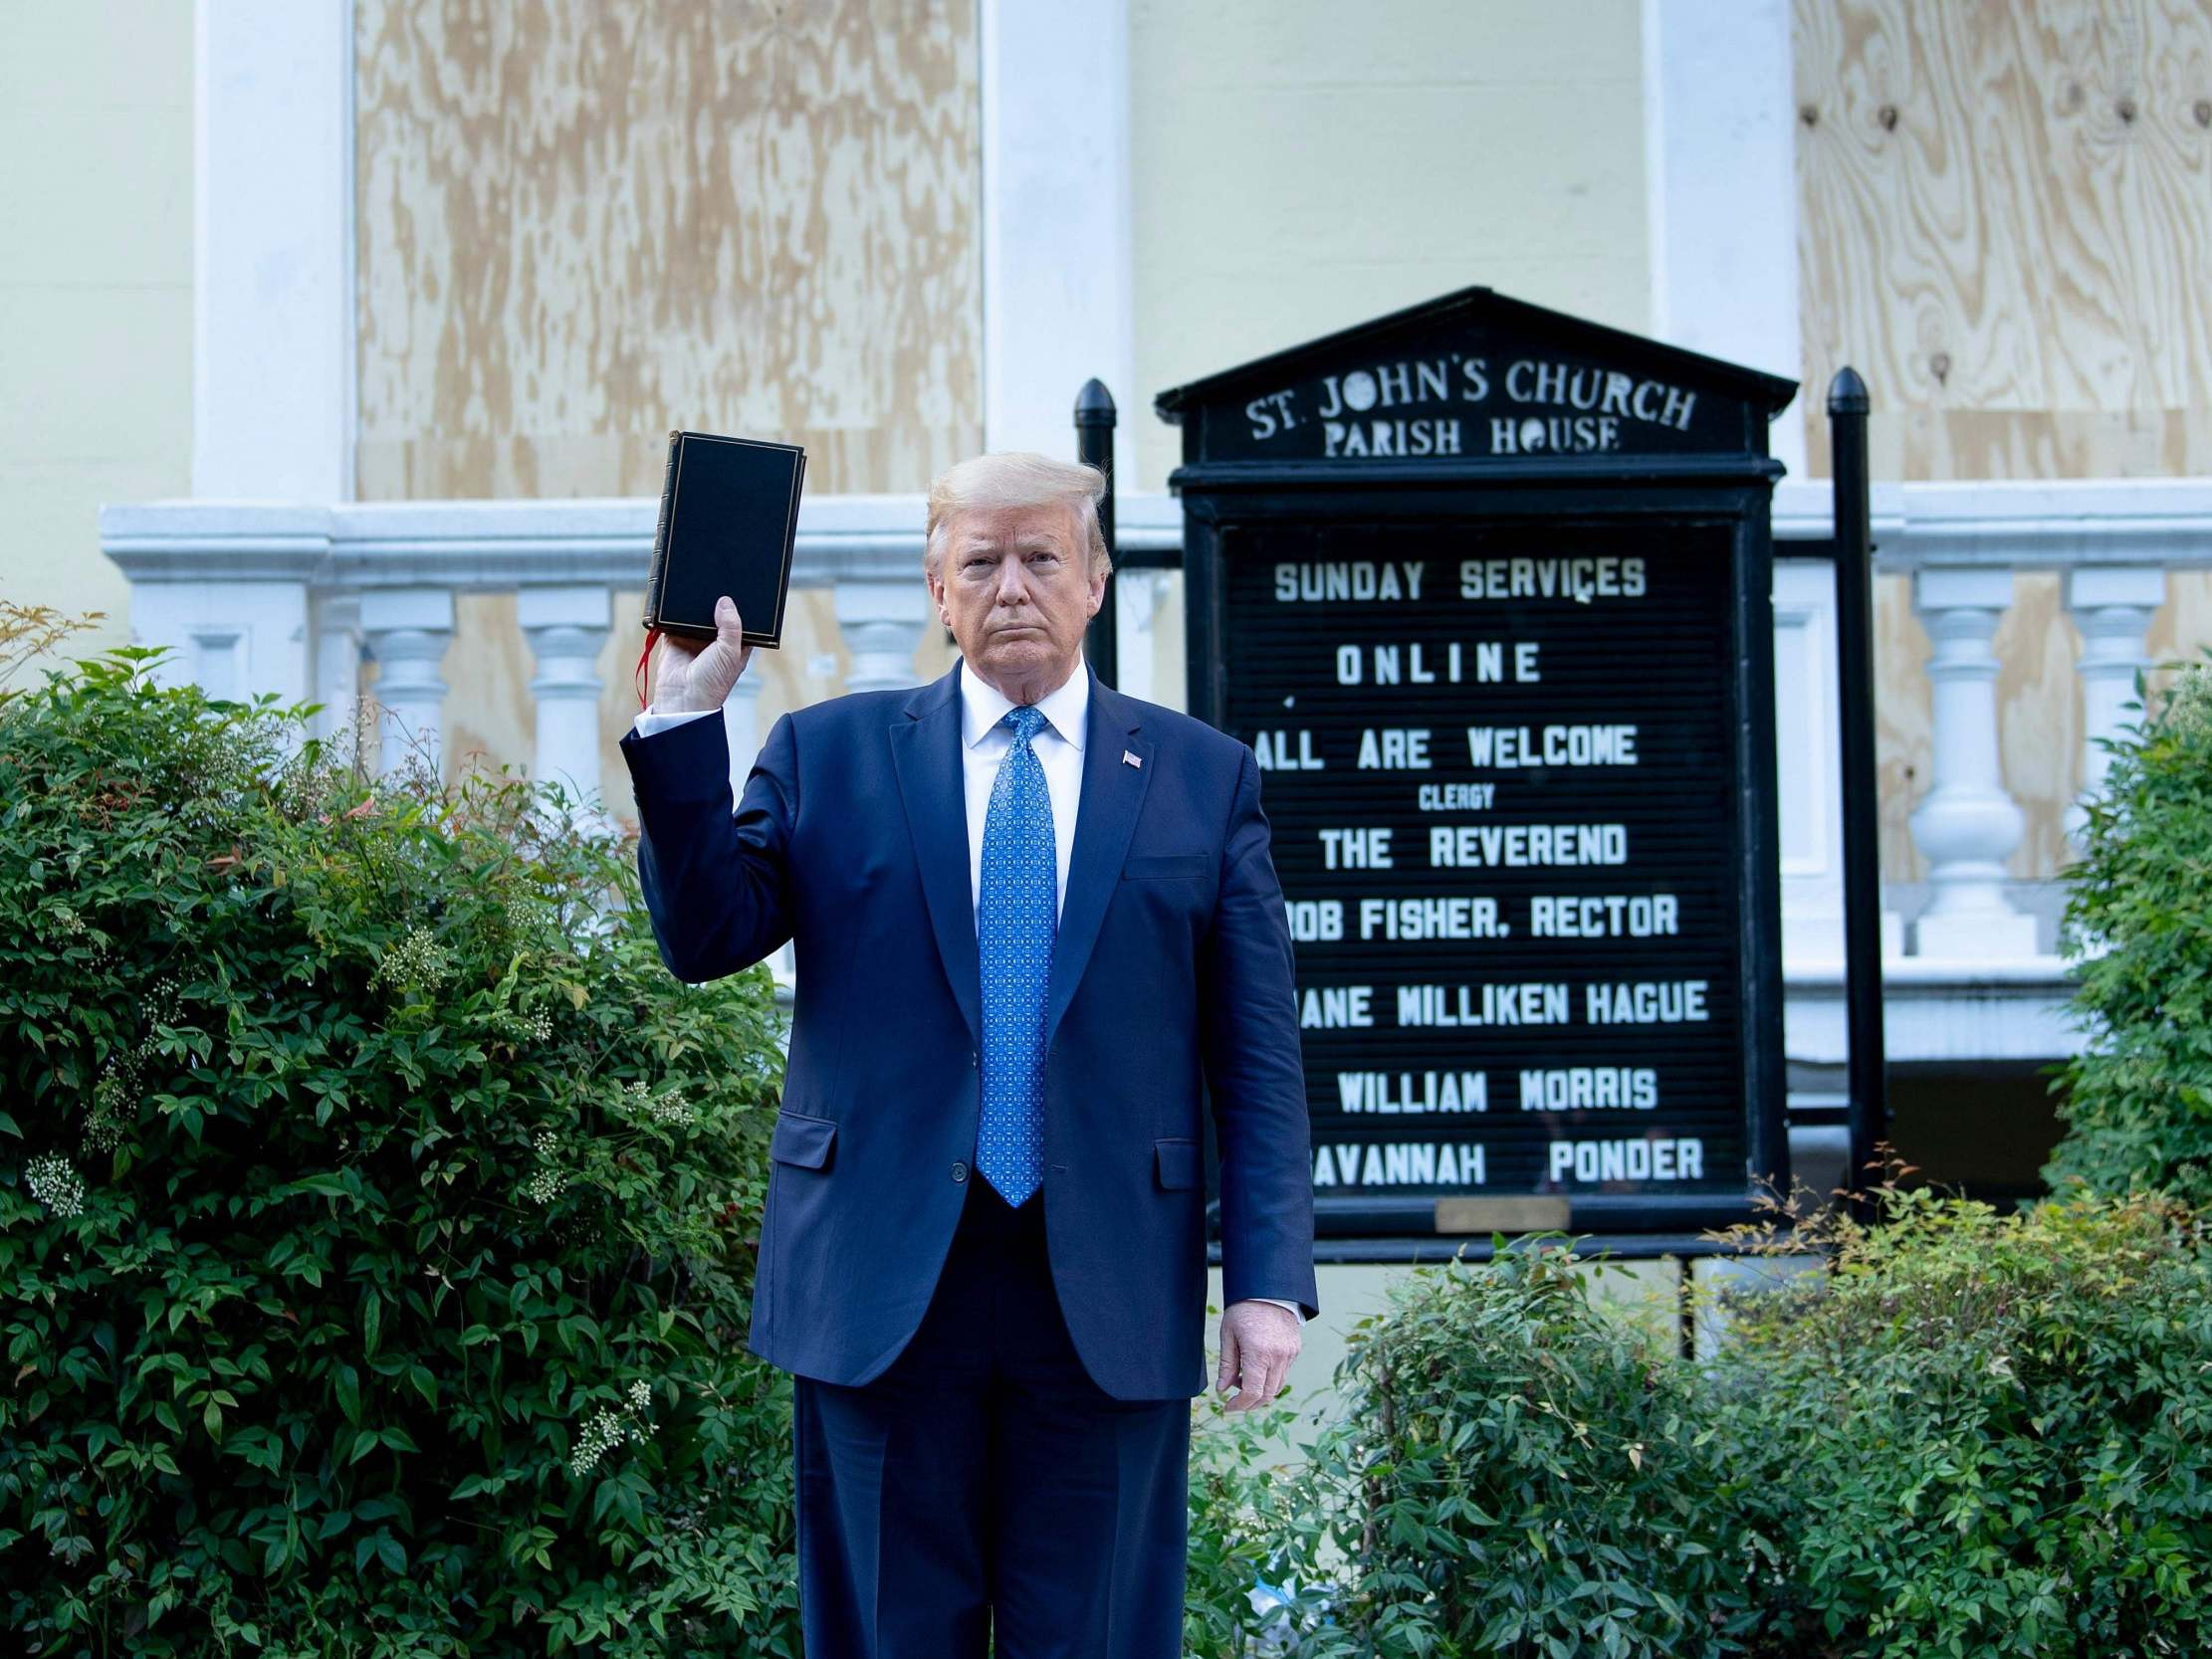 Bishop 'outraged' after Trump had protesters tear-gassed before posing with bible at her church